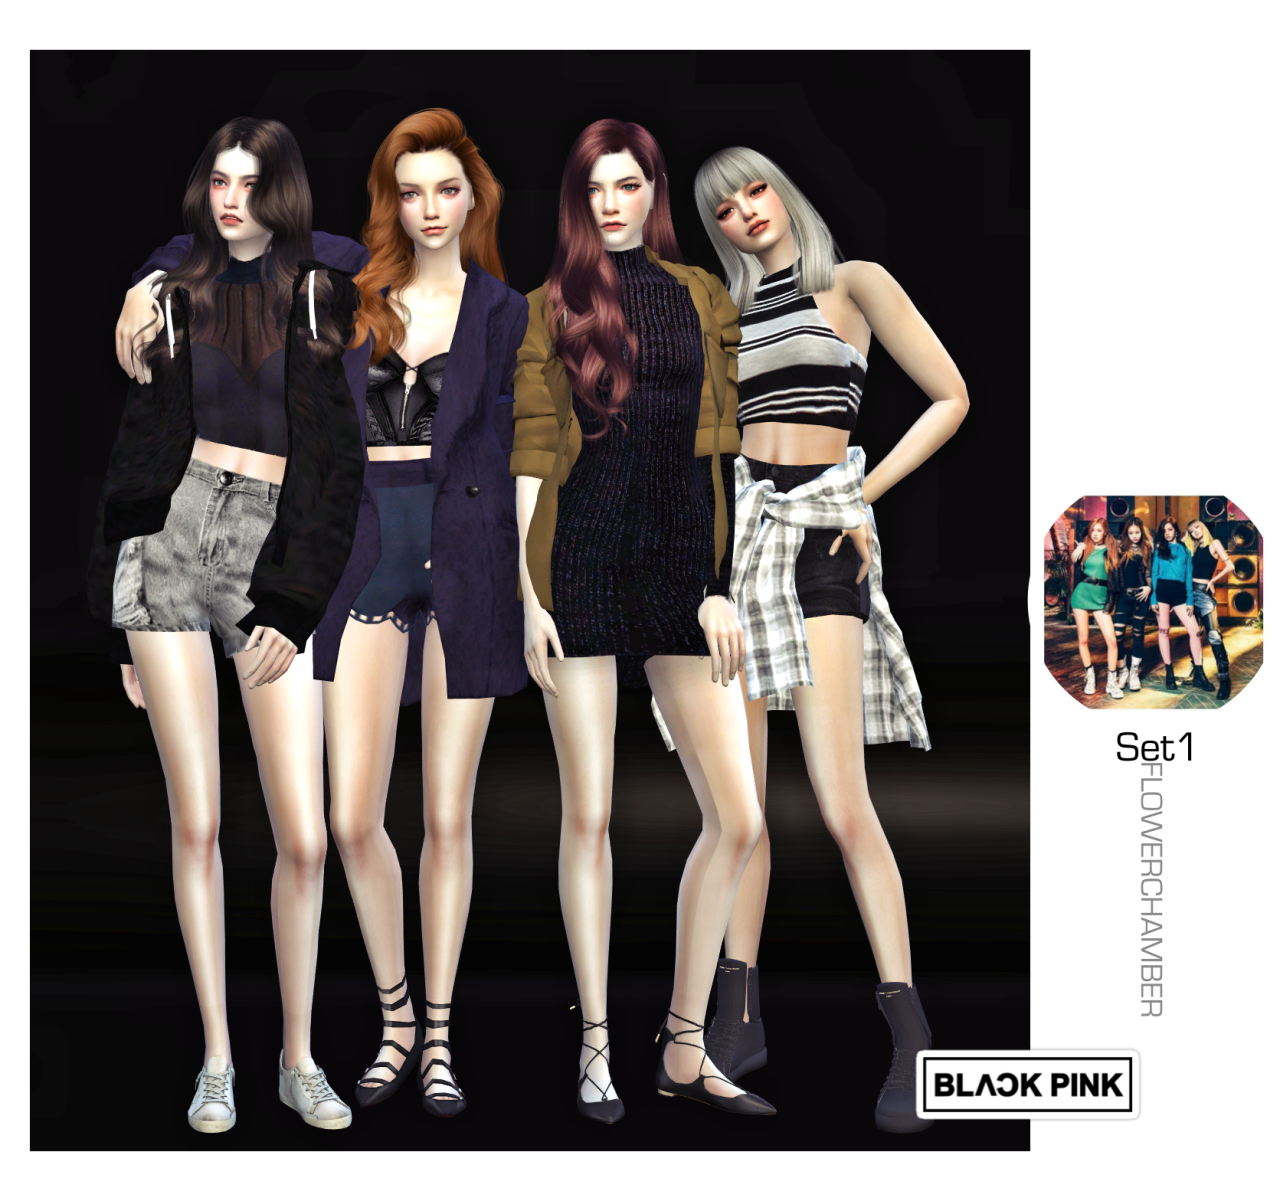 BLACKPINK POSES SET by flowerchamber